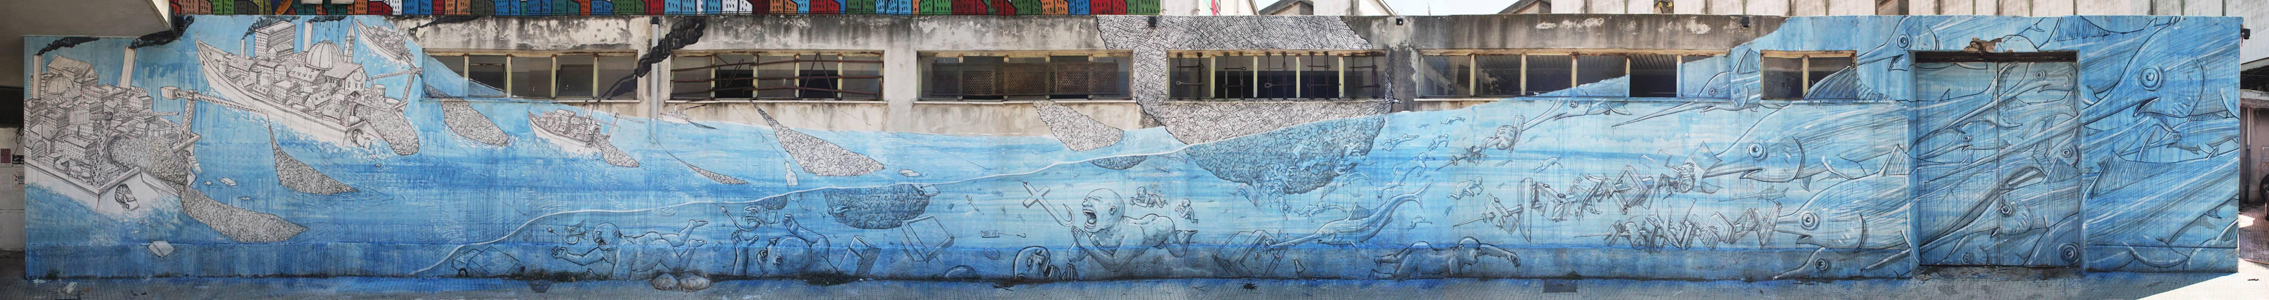 blu-new-mural-in-messina-01